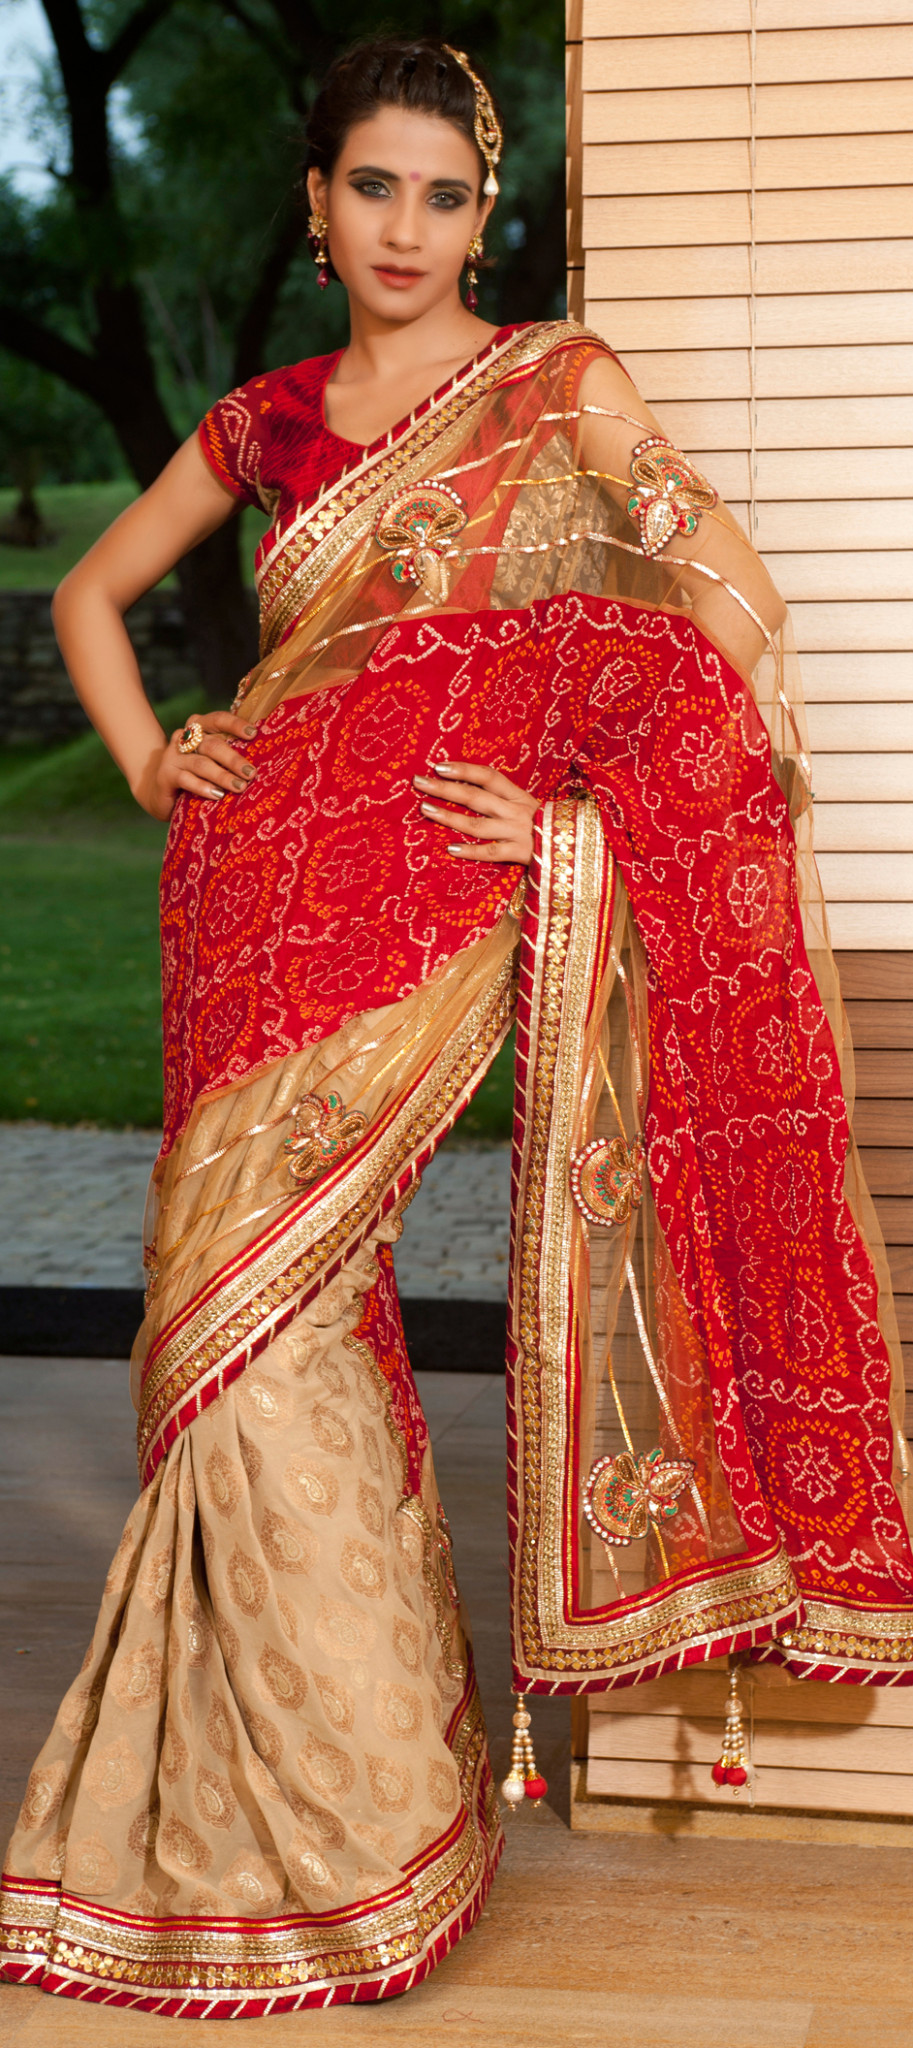 Online Indian Wedding Saree Store for Daughters Wedding